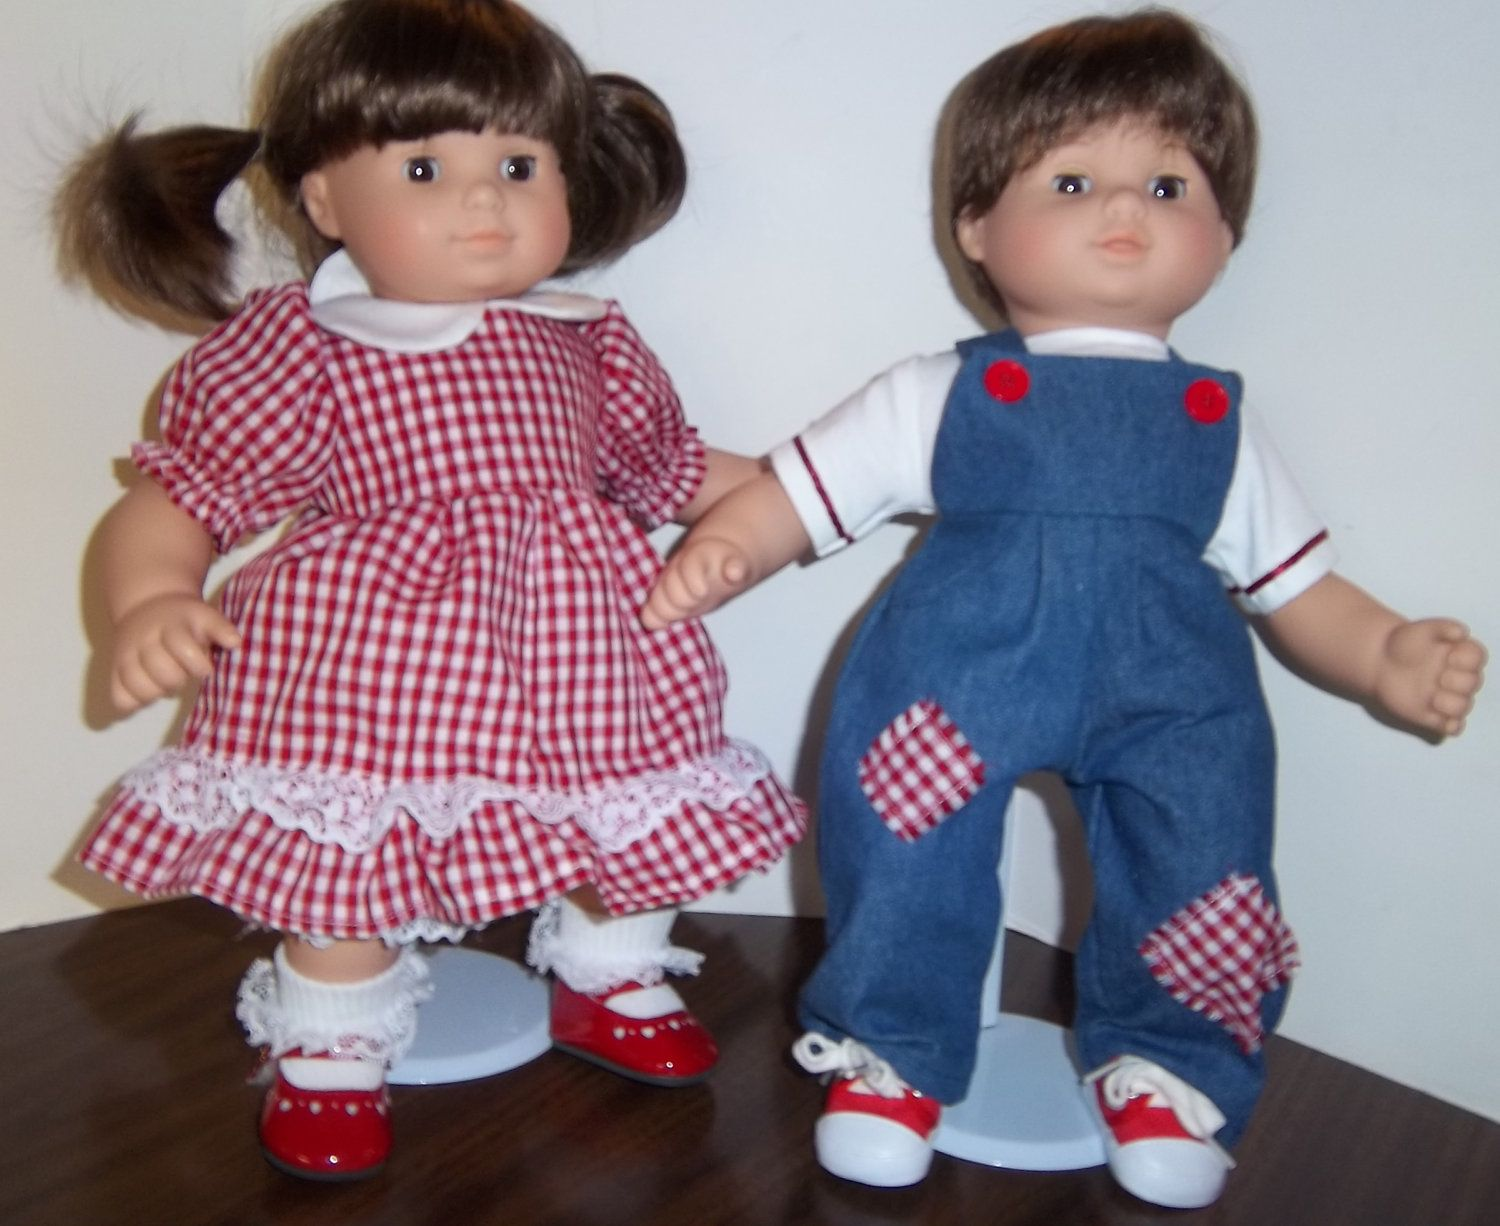 American Girl 15 Doll Clothing Bitty Twins Ruffles And Patches Boy Girl Play Sets 28 00 Via Etsy Doll Clothes Bitty Baby Baby Doll Clothes